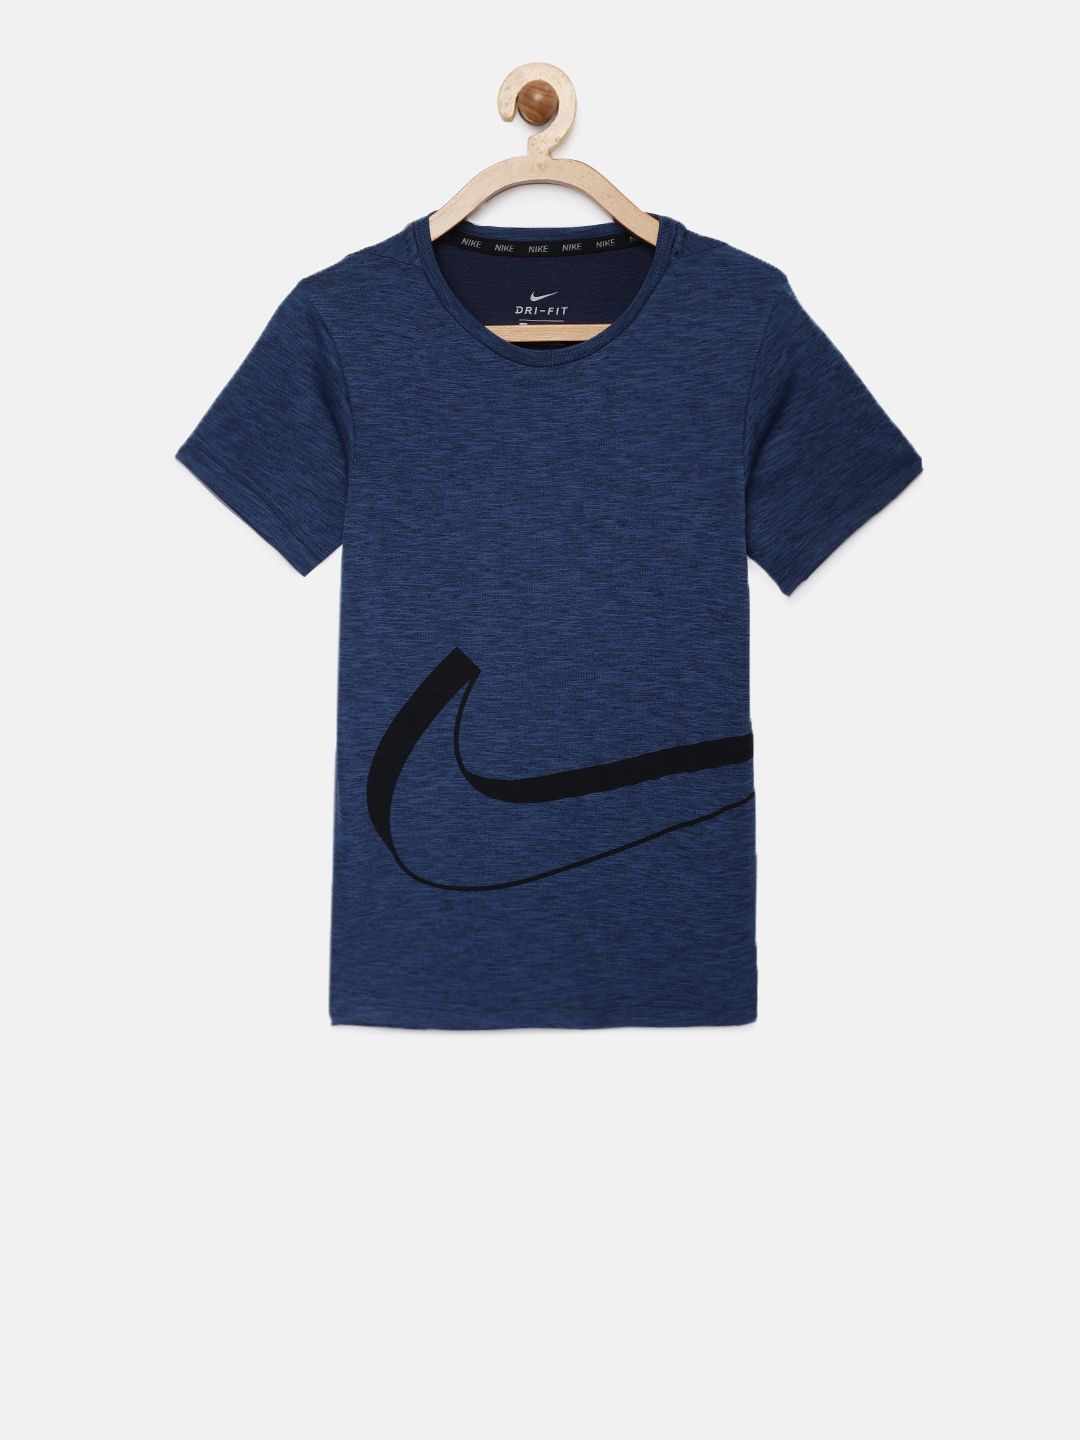 Nike - Shop for Nike Apparels Online in India  47d178225